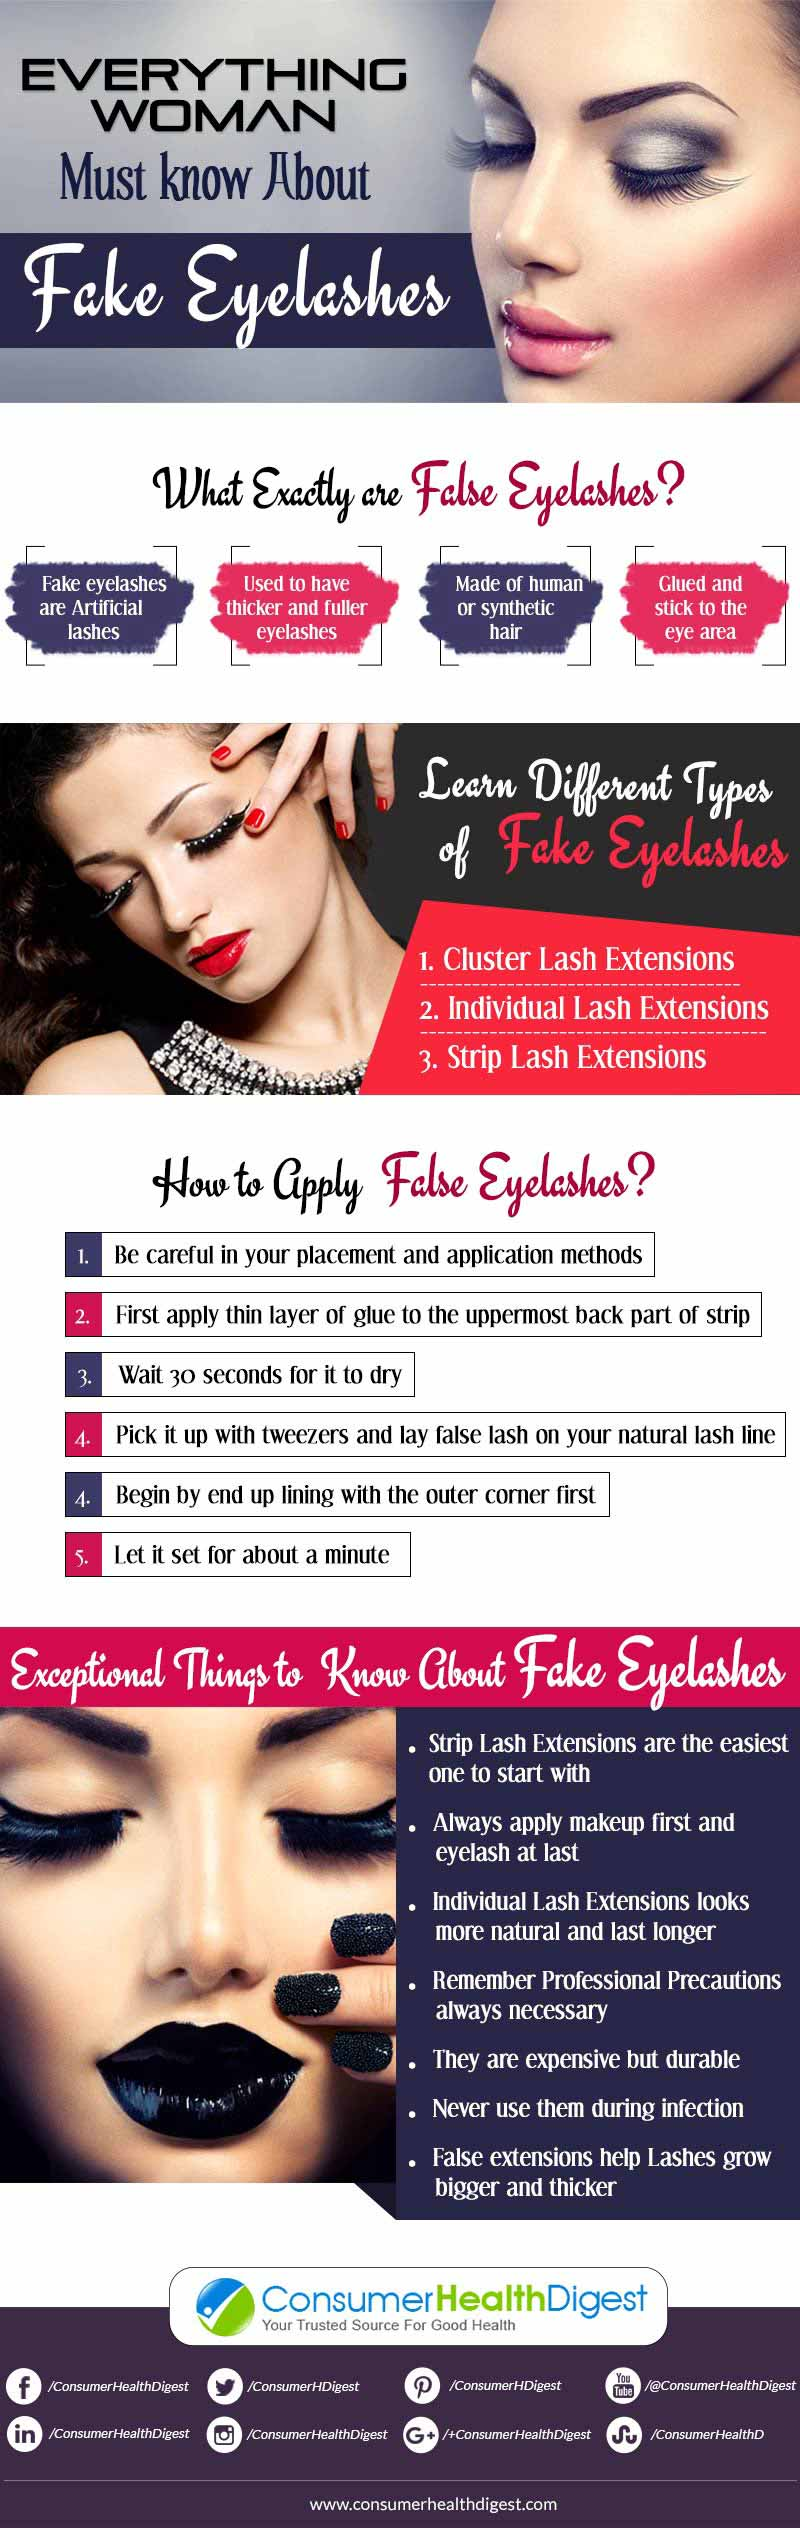 Fake Eyelashes Info